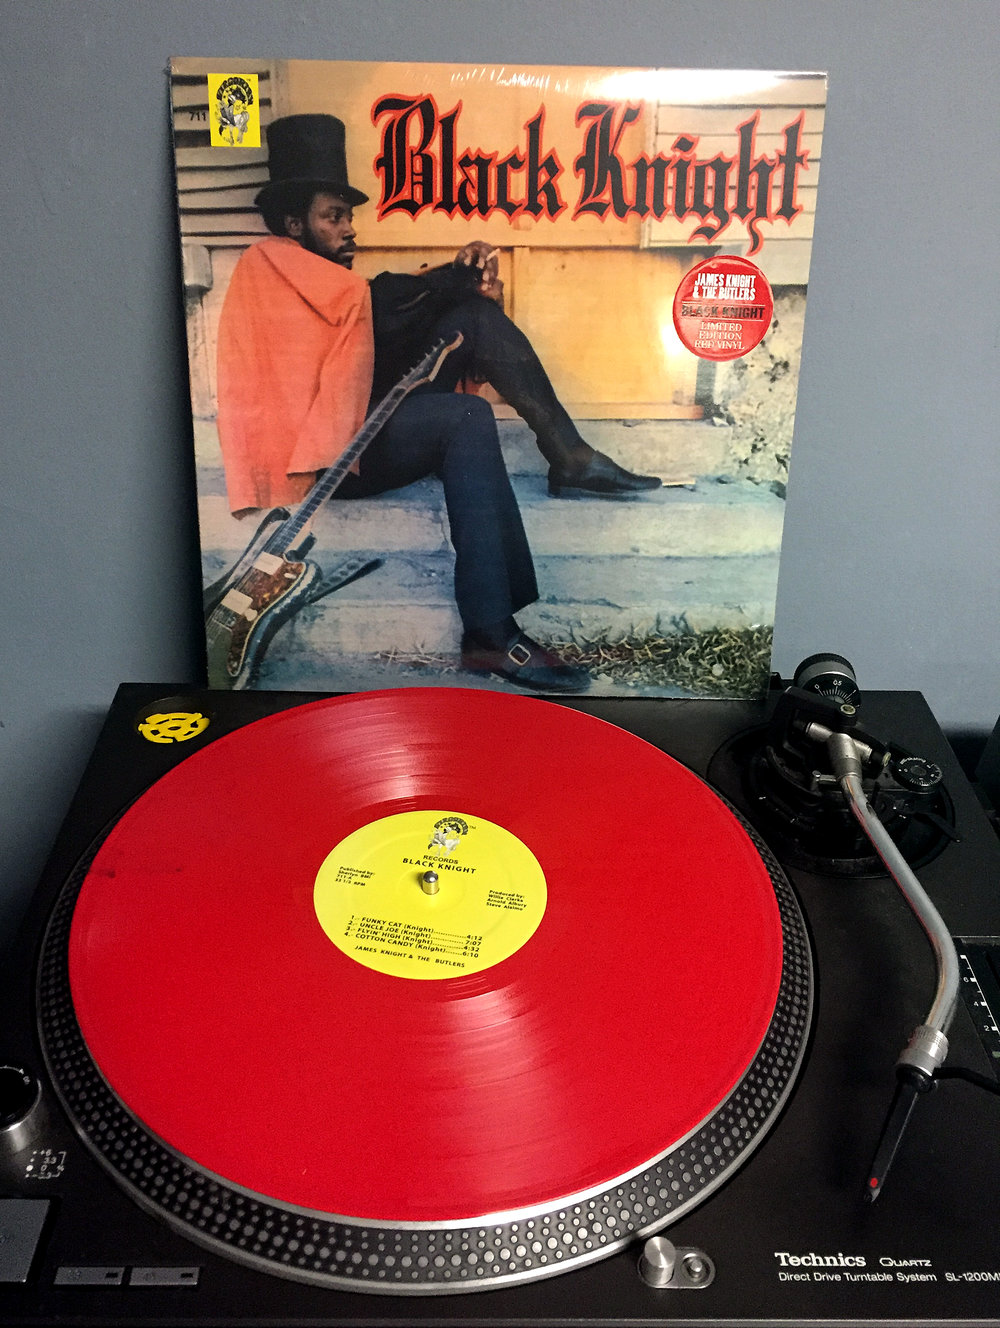 JAMES KNIGHT & THE BUTLERS Black Knight Artist Link: jamesknightandthebutlers.com Label: Virgorian Records